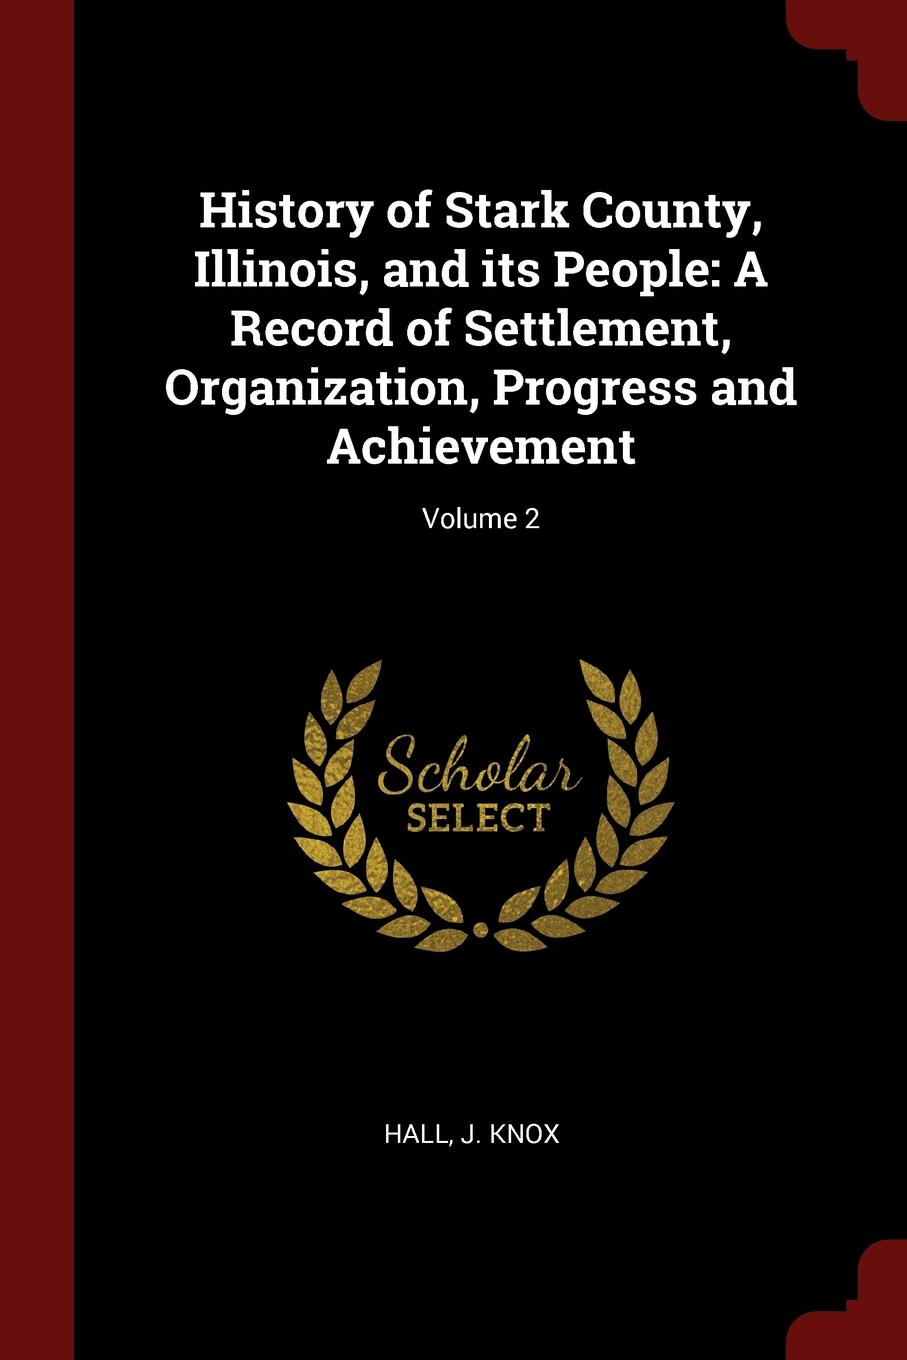 J Knox Hall History of Stark County, Illinois, and its People. A Record of Settlement, Organization, Progress and Achievement; Volume 2